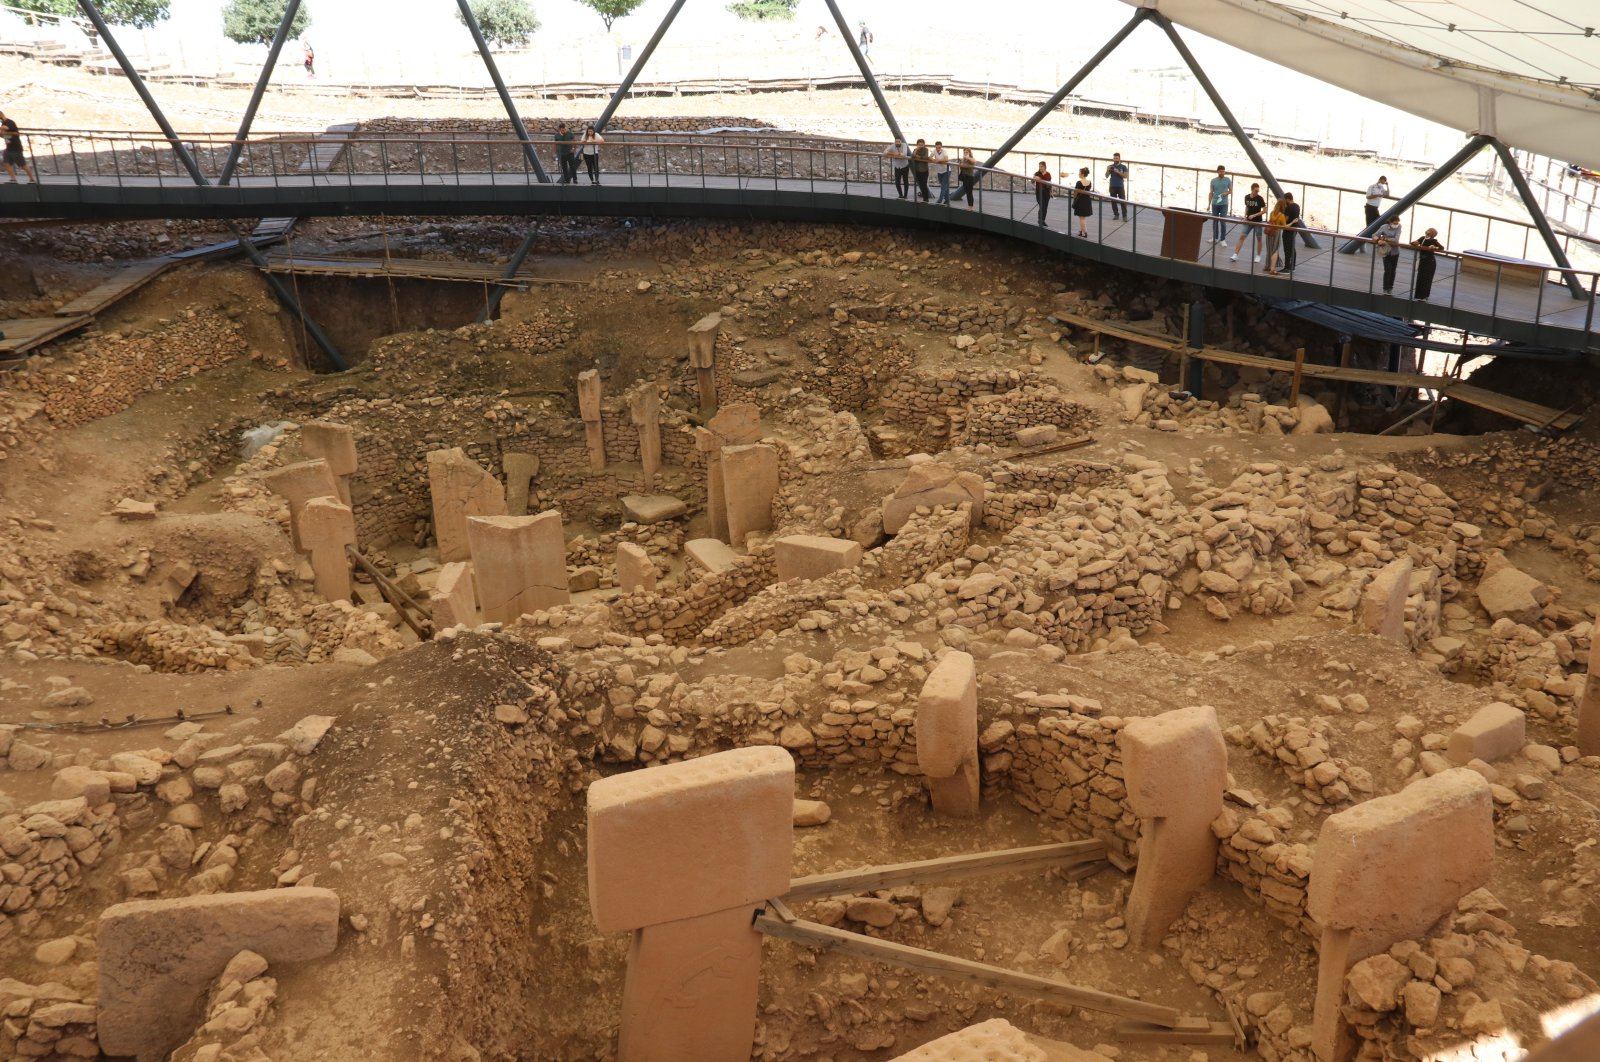 The ancient Göbeklitepe site was discovered in 1963 by researchers from the universities of Istanbul and Chicago. (AA PHOTO)